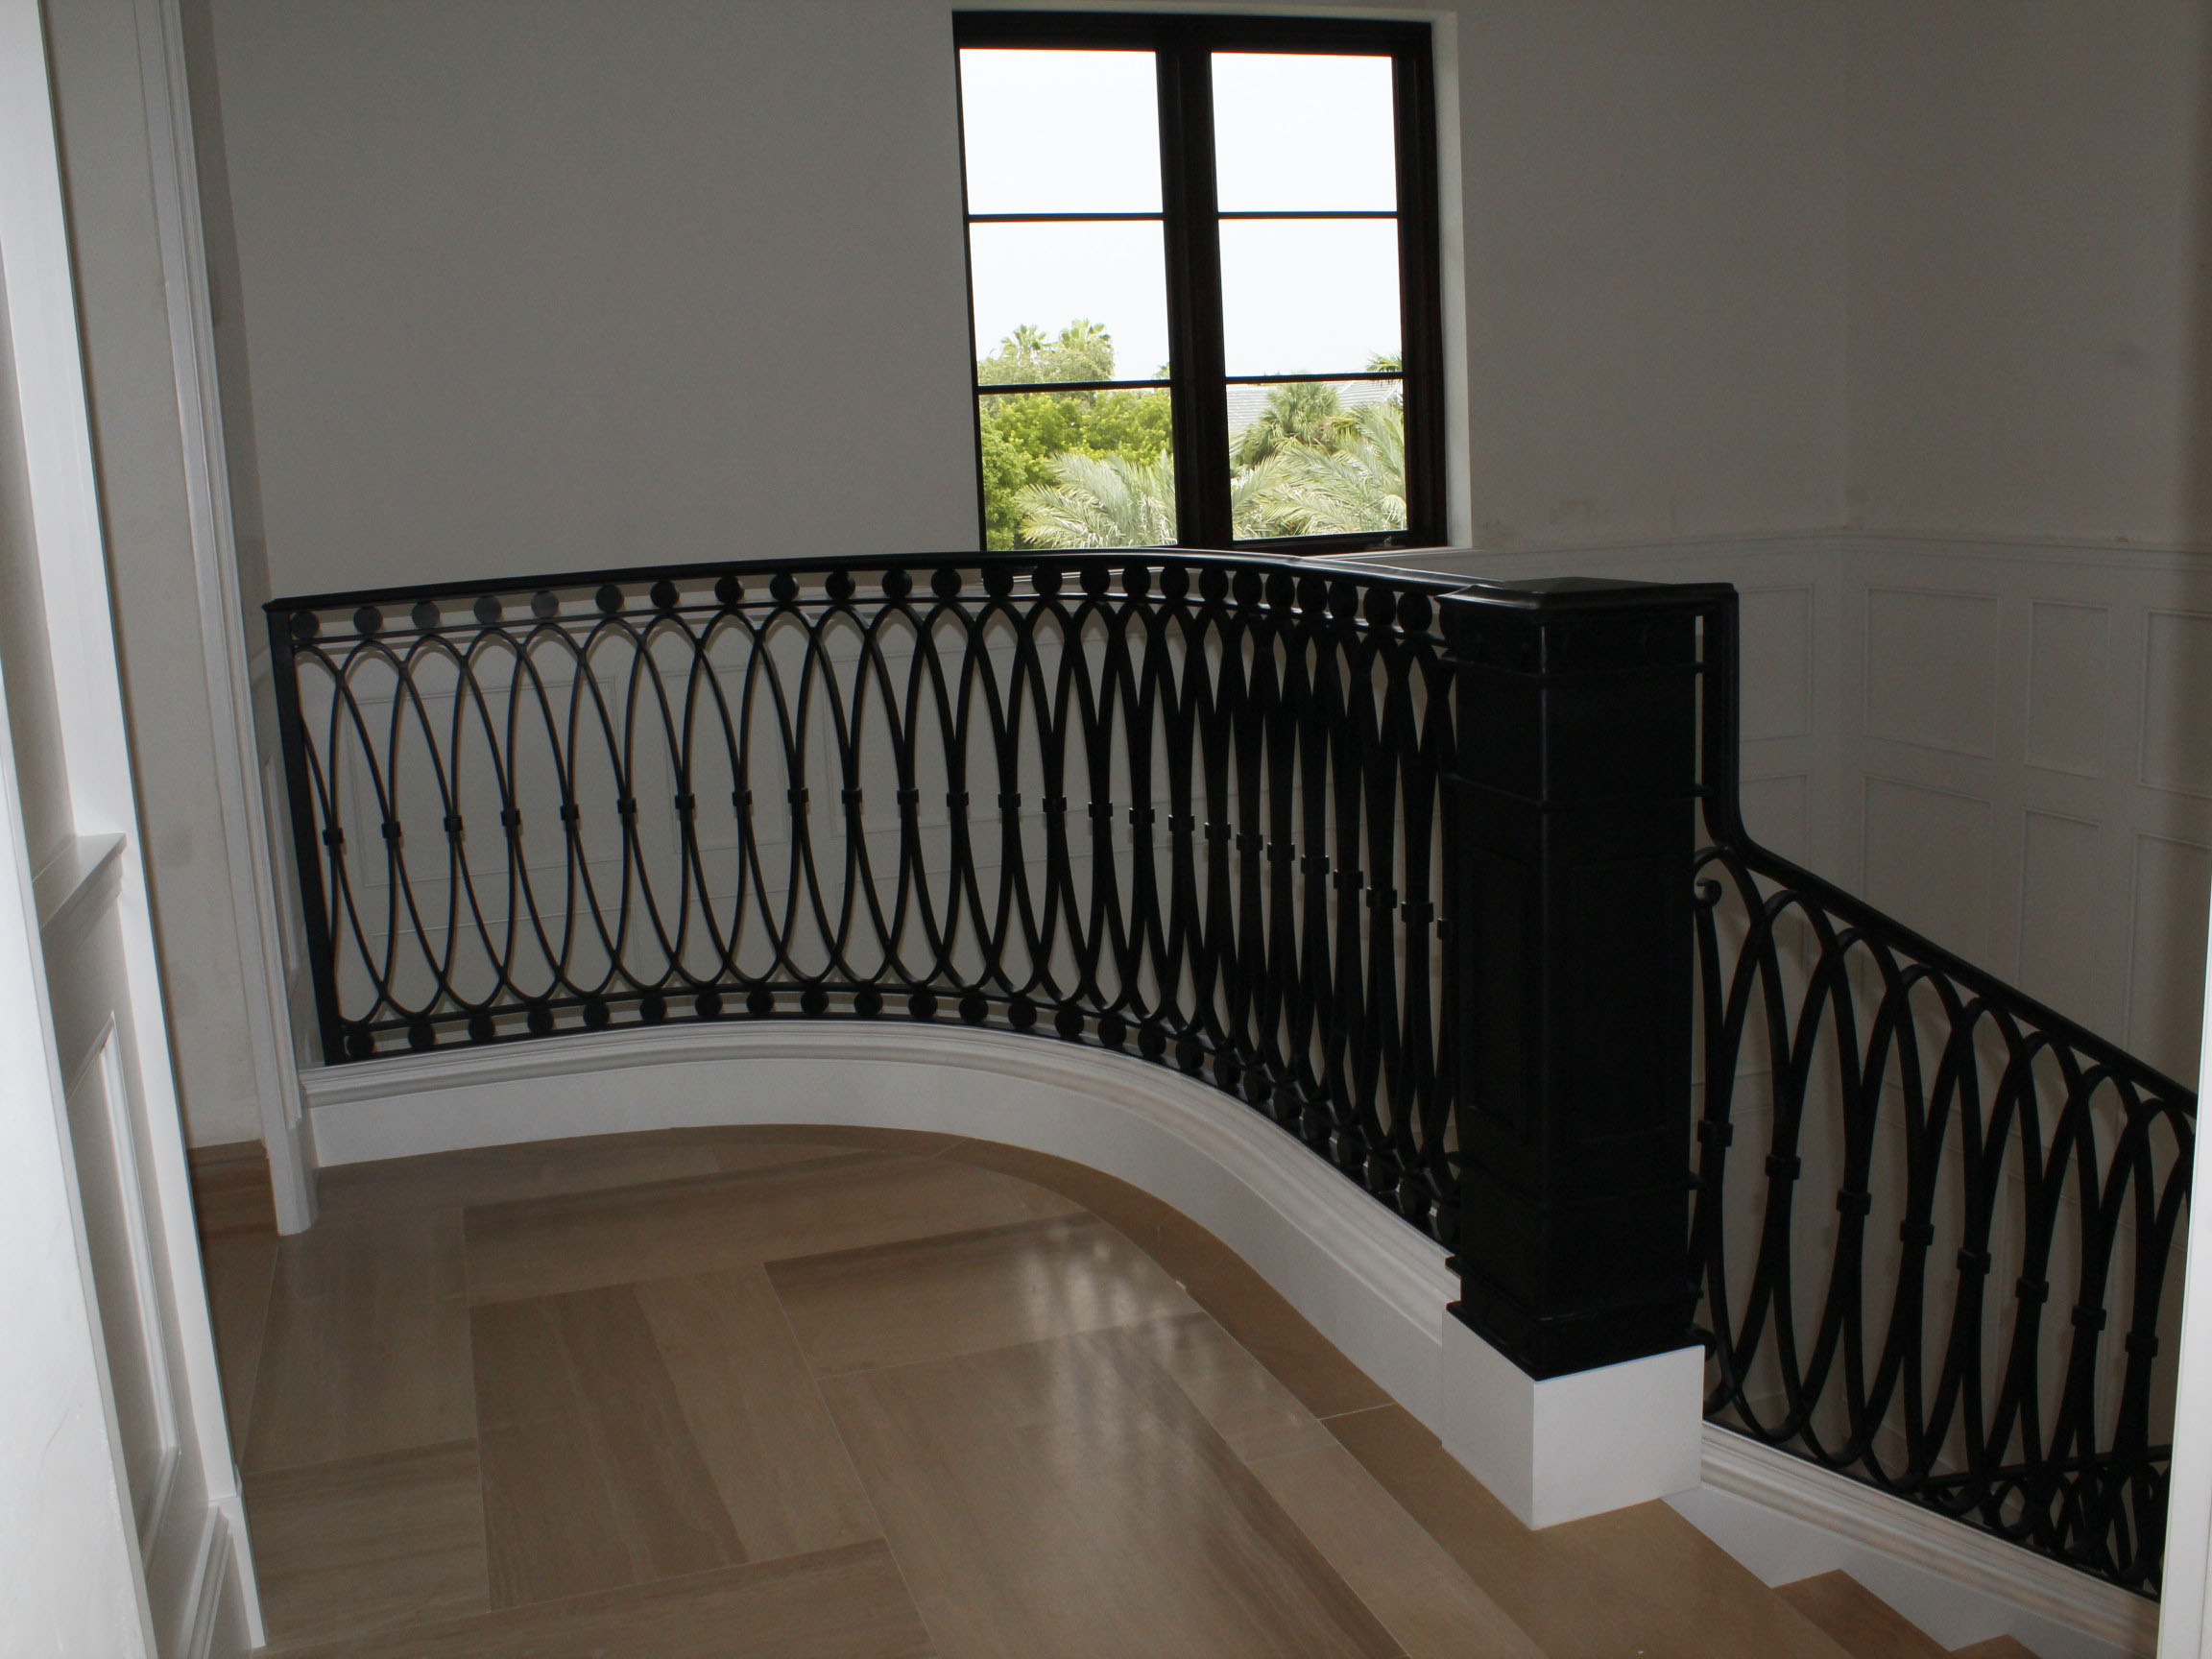 The second floor view of the spiral staircase.